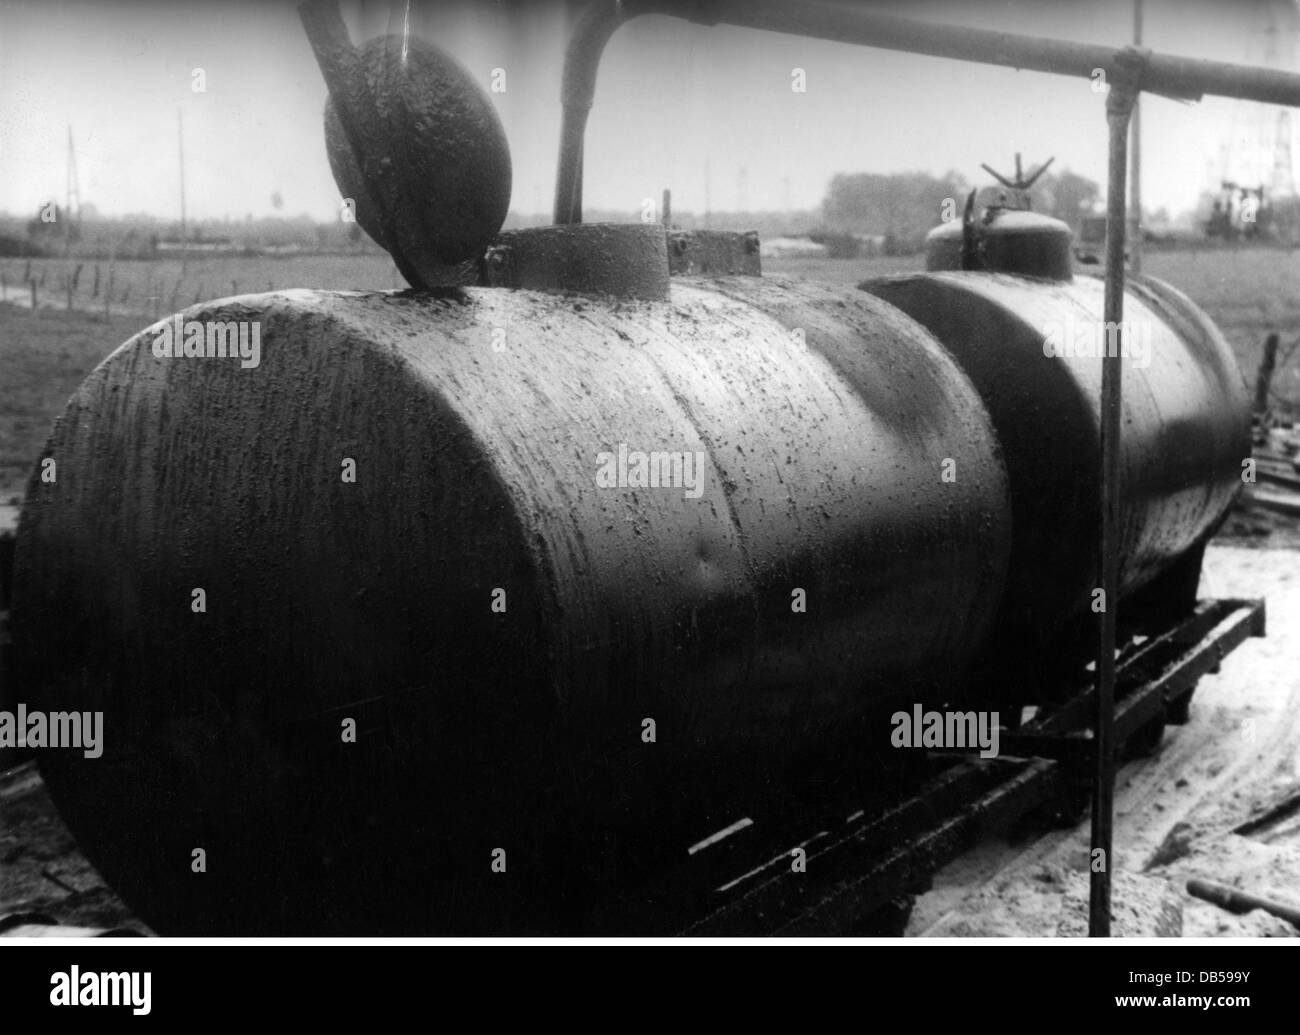 events, Second World War / WWII, Germany, wartime economy, petroleum from Emsland, filling up tanks, Additional - Stock Image